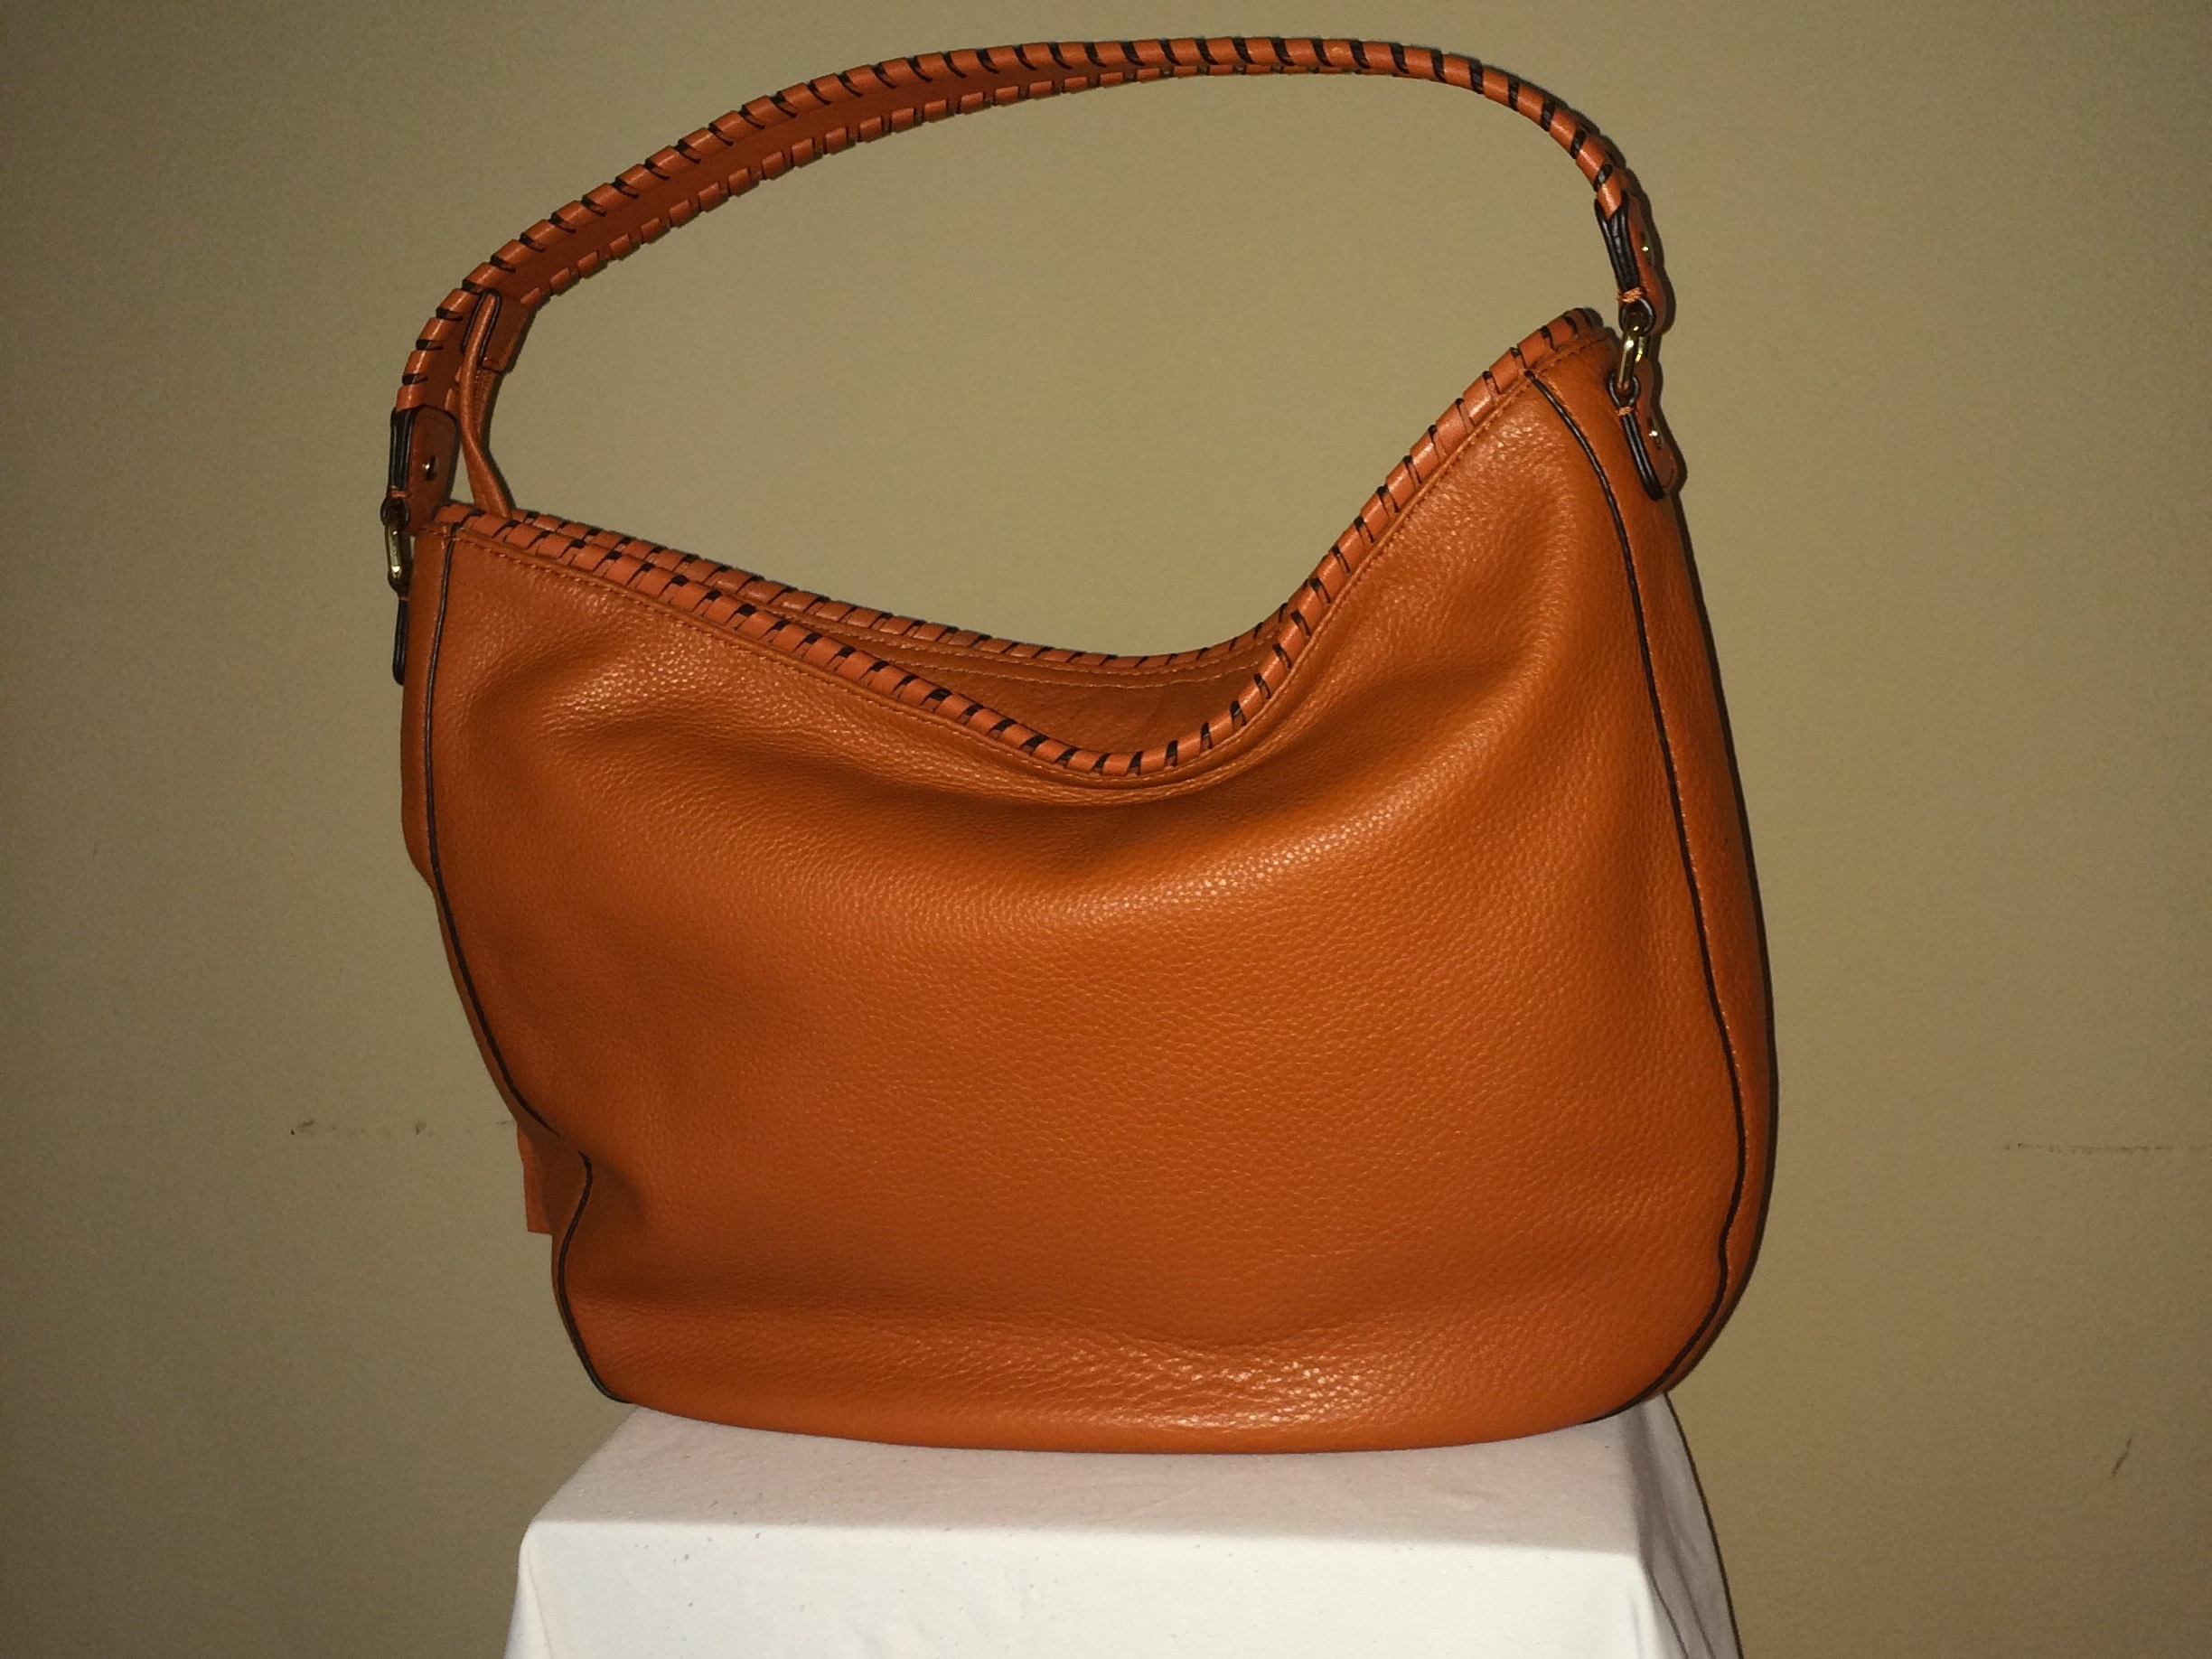 Coral Michael Kors - rear